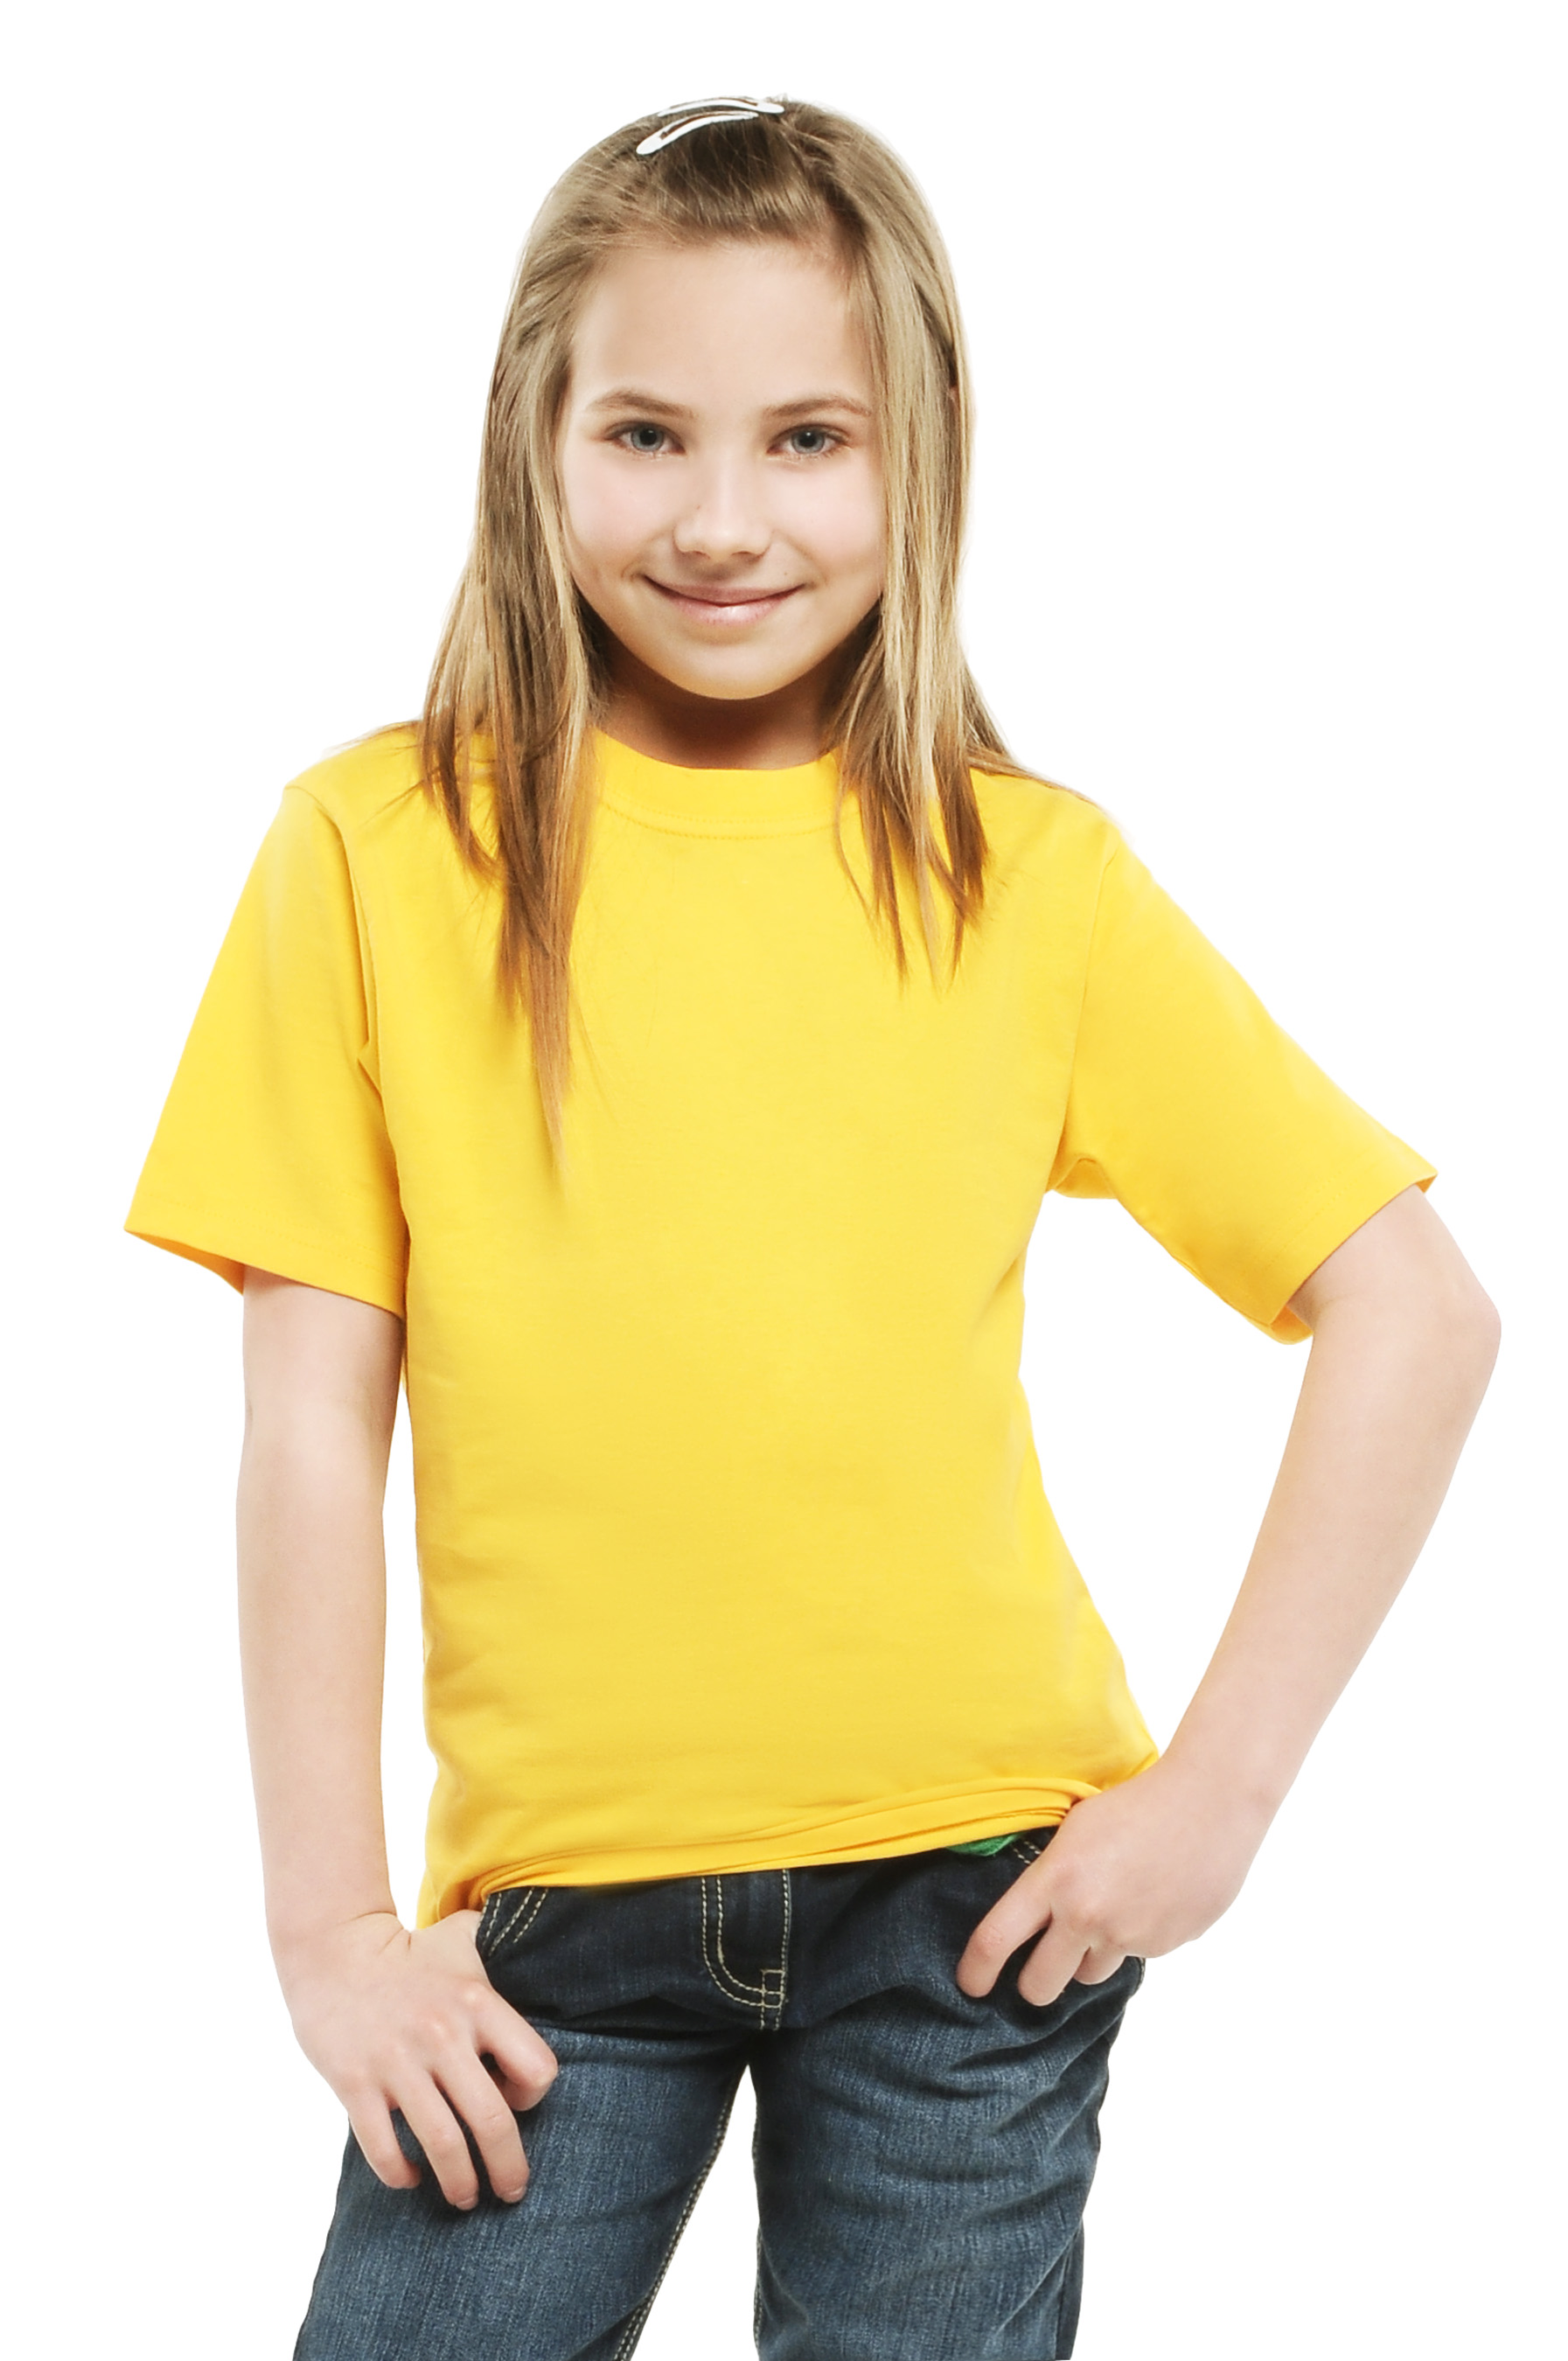 Childrens t shirt trinity wear embroidery for Yellow t shirt for kids